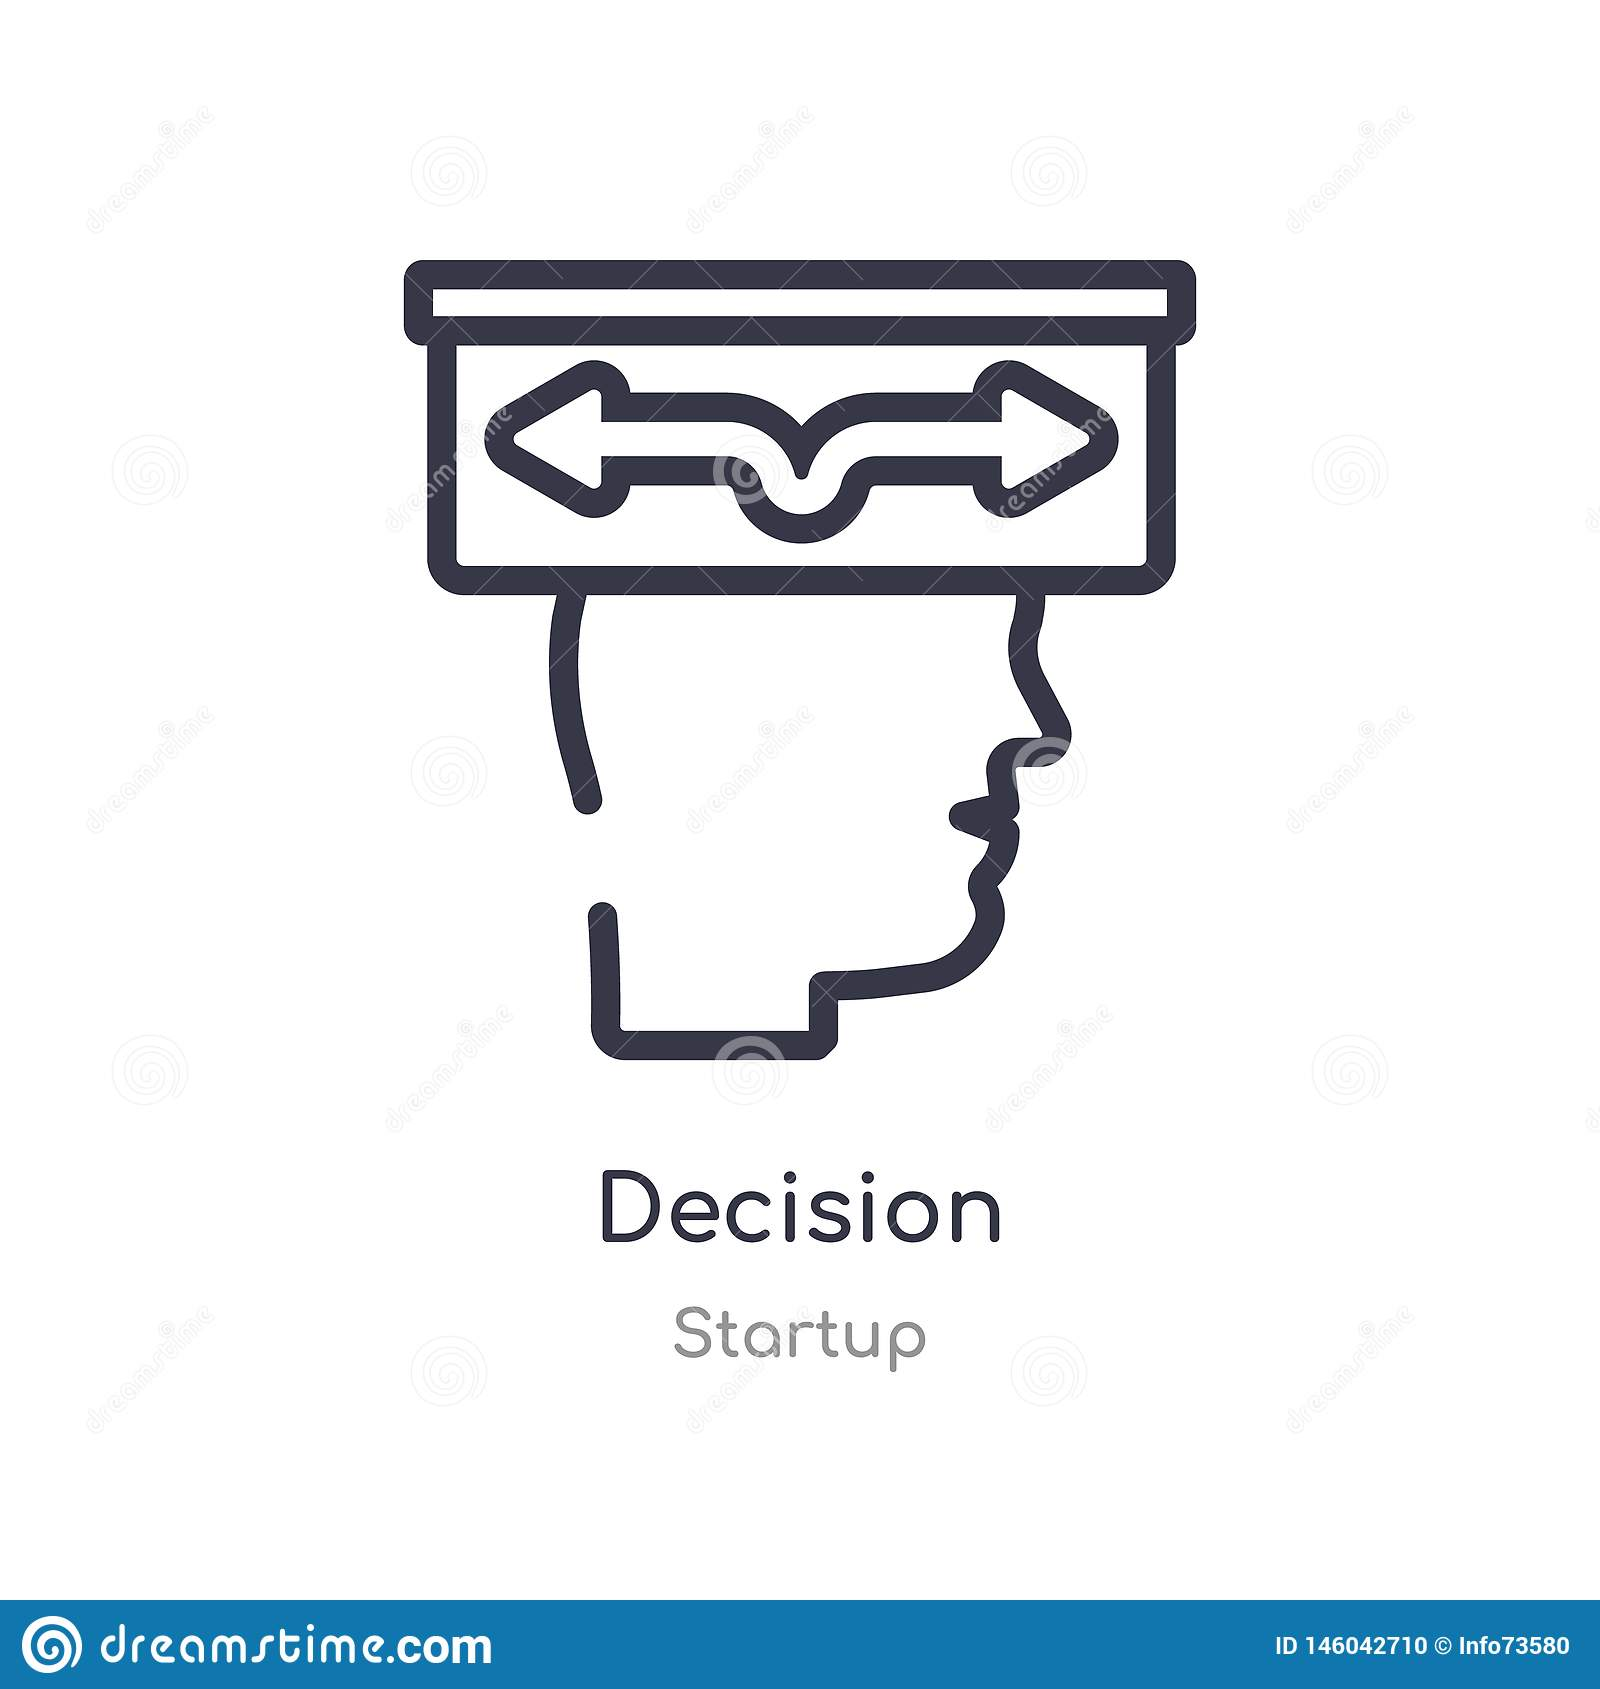 decision outline icon. isolated line vector illustration from startup collection. editable thin stroke decision icon on white